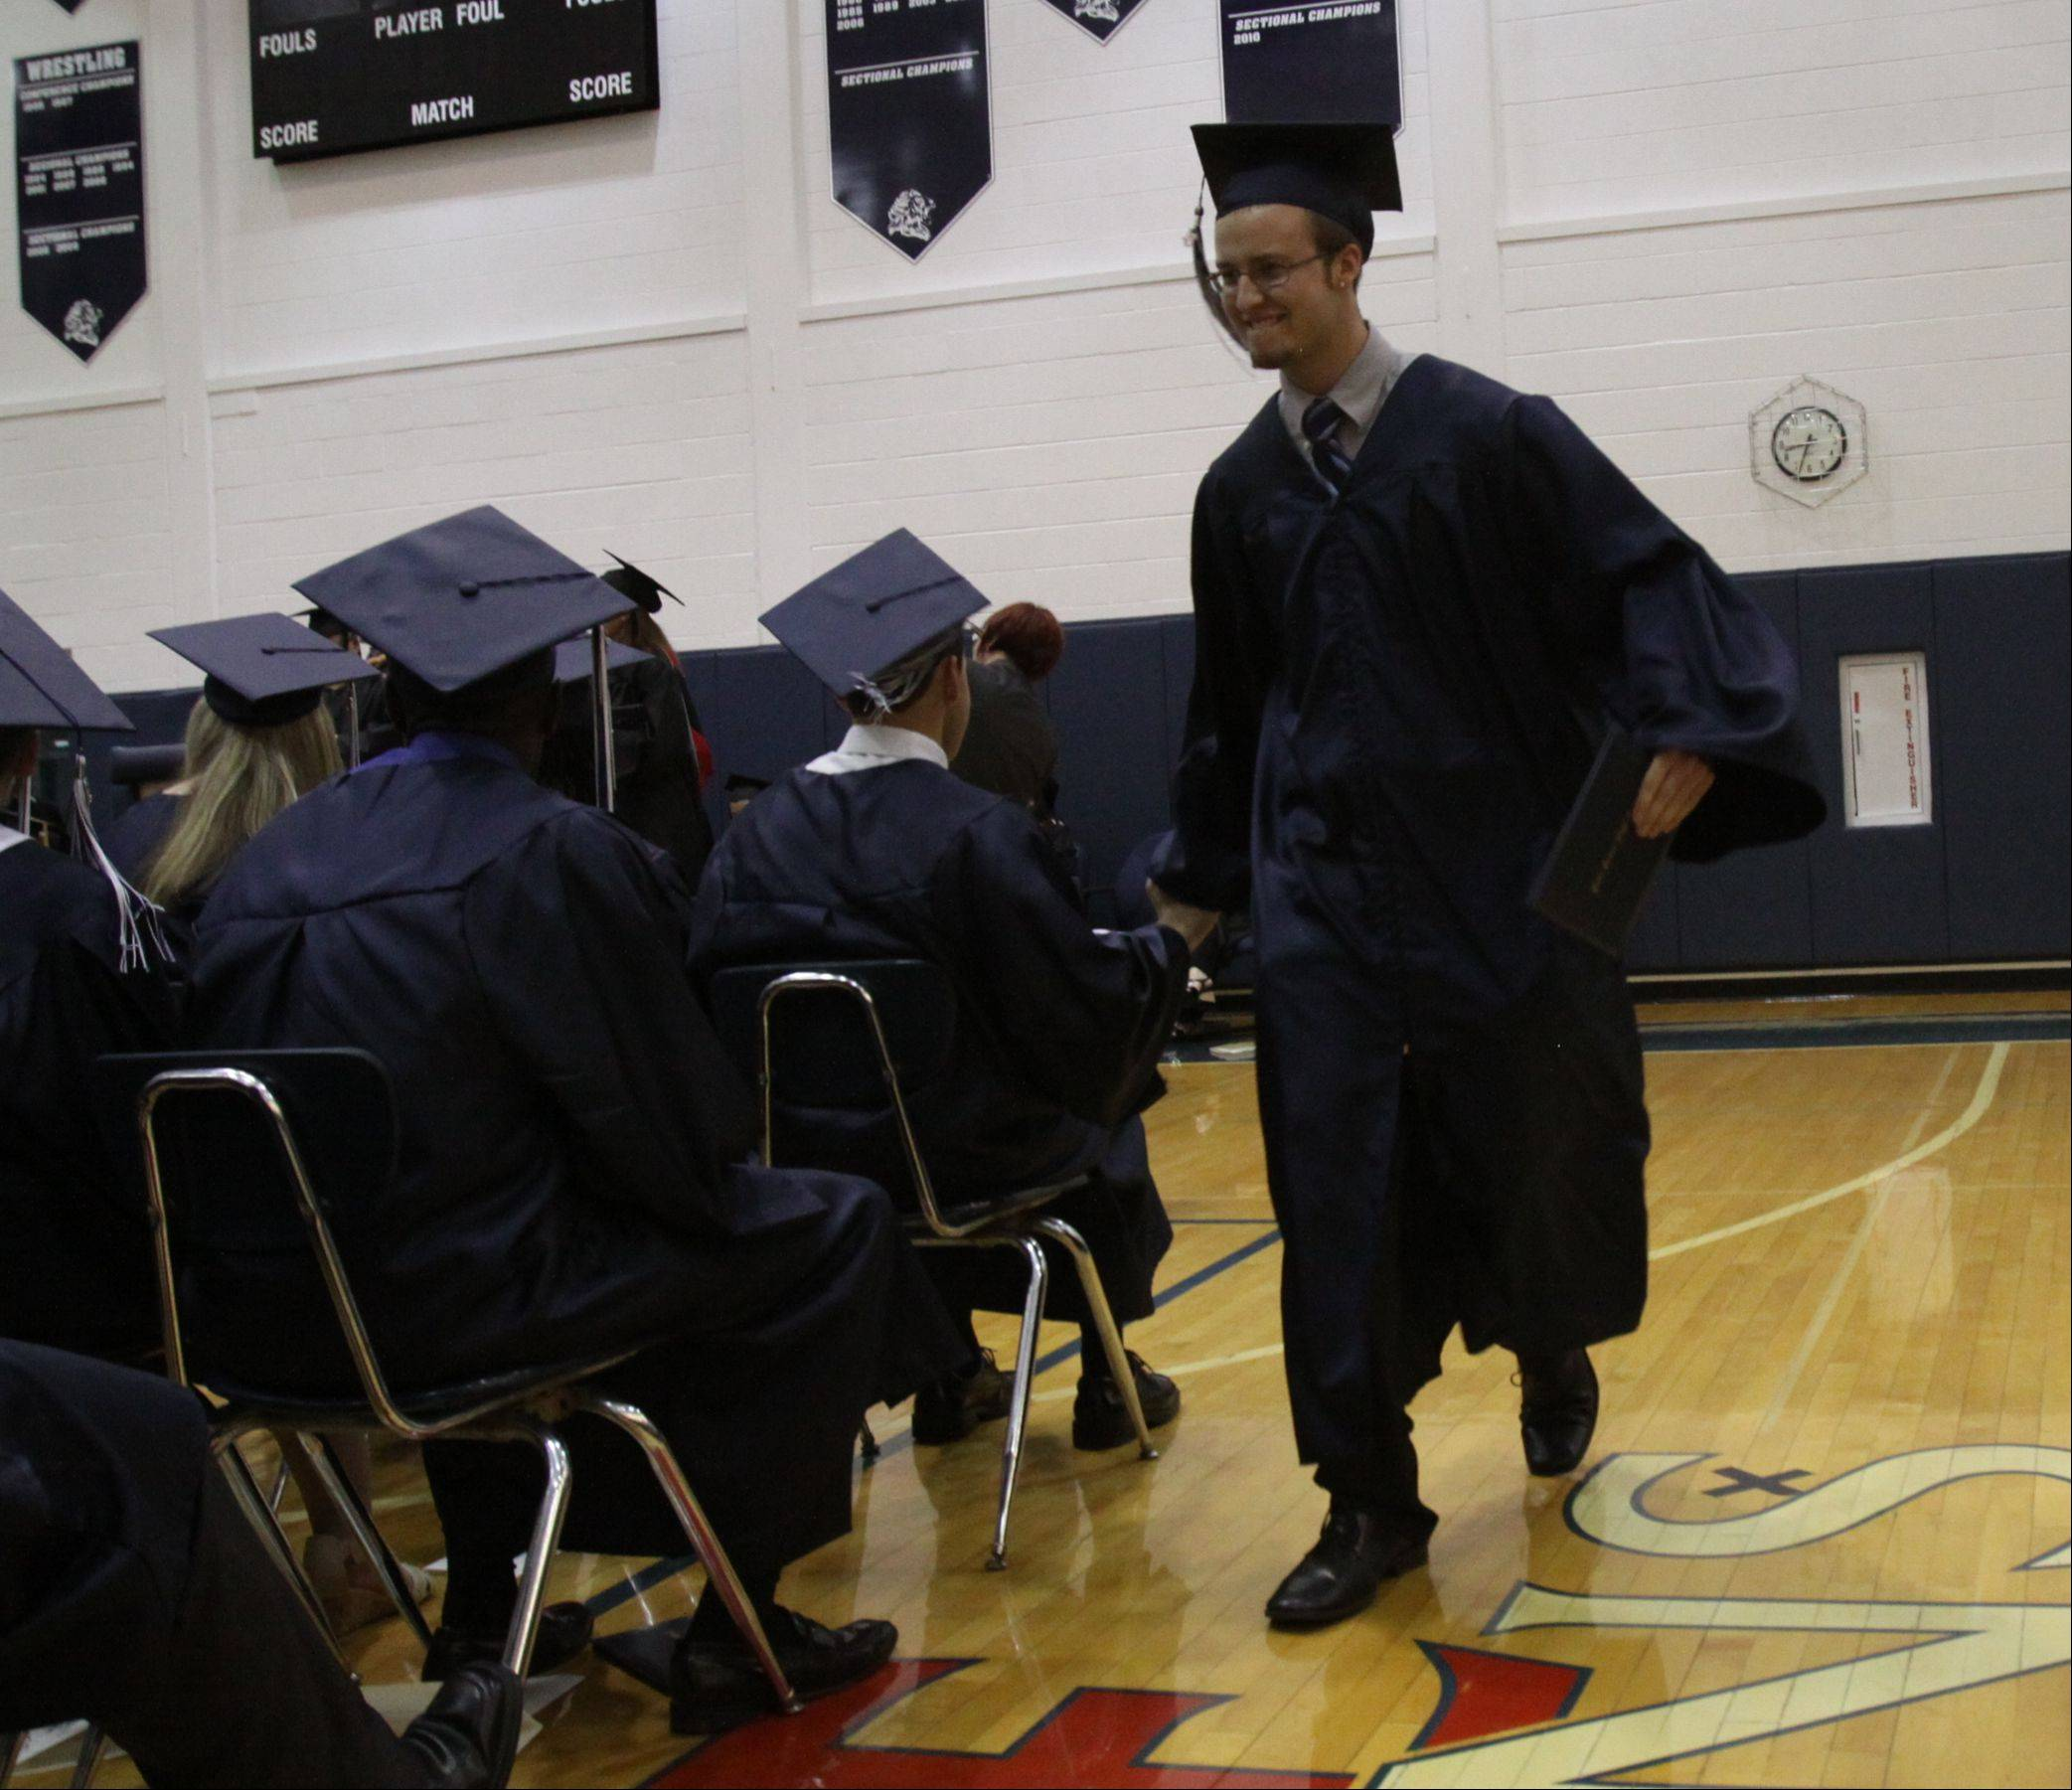 Images from the Lisle High School graduation on Friday, May 31 at the school in Lisle.